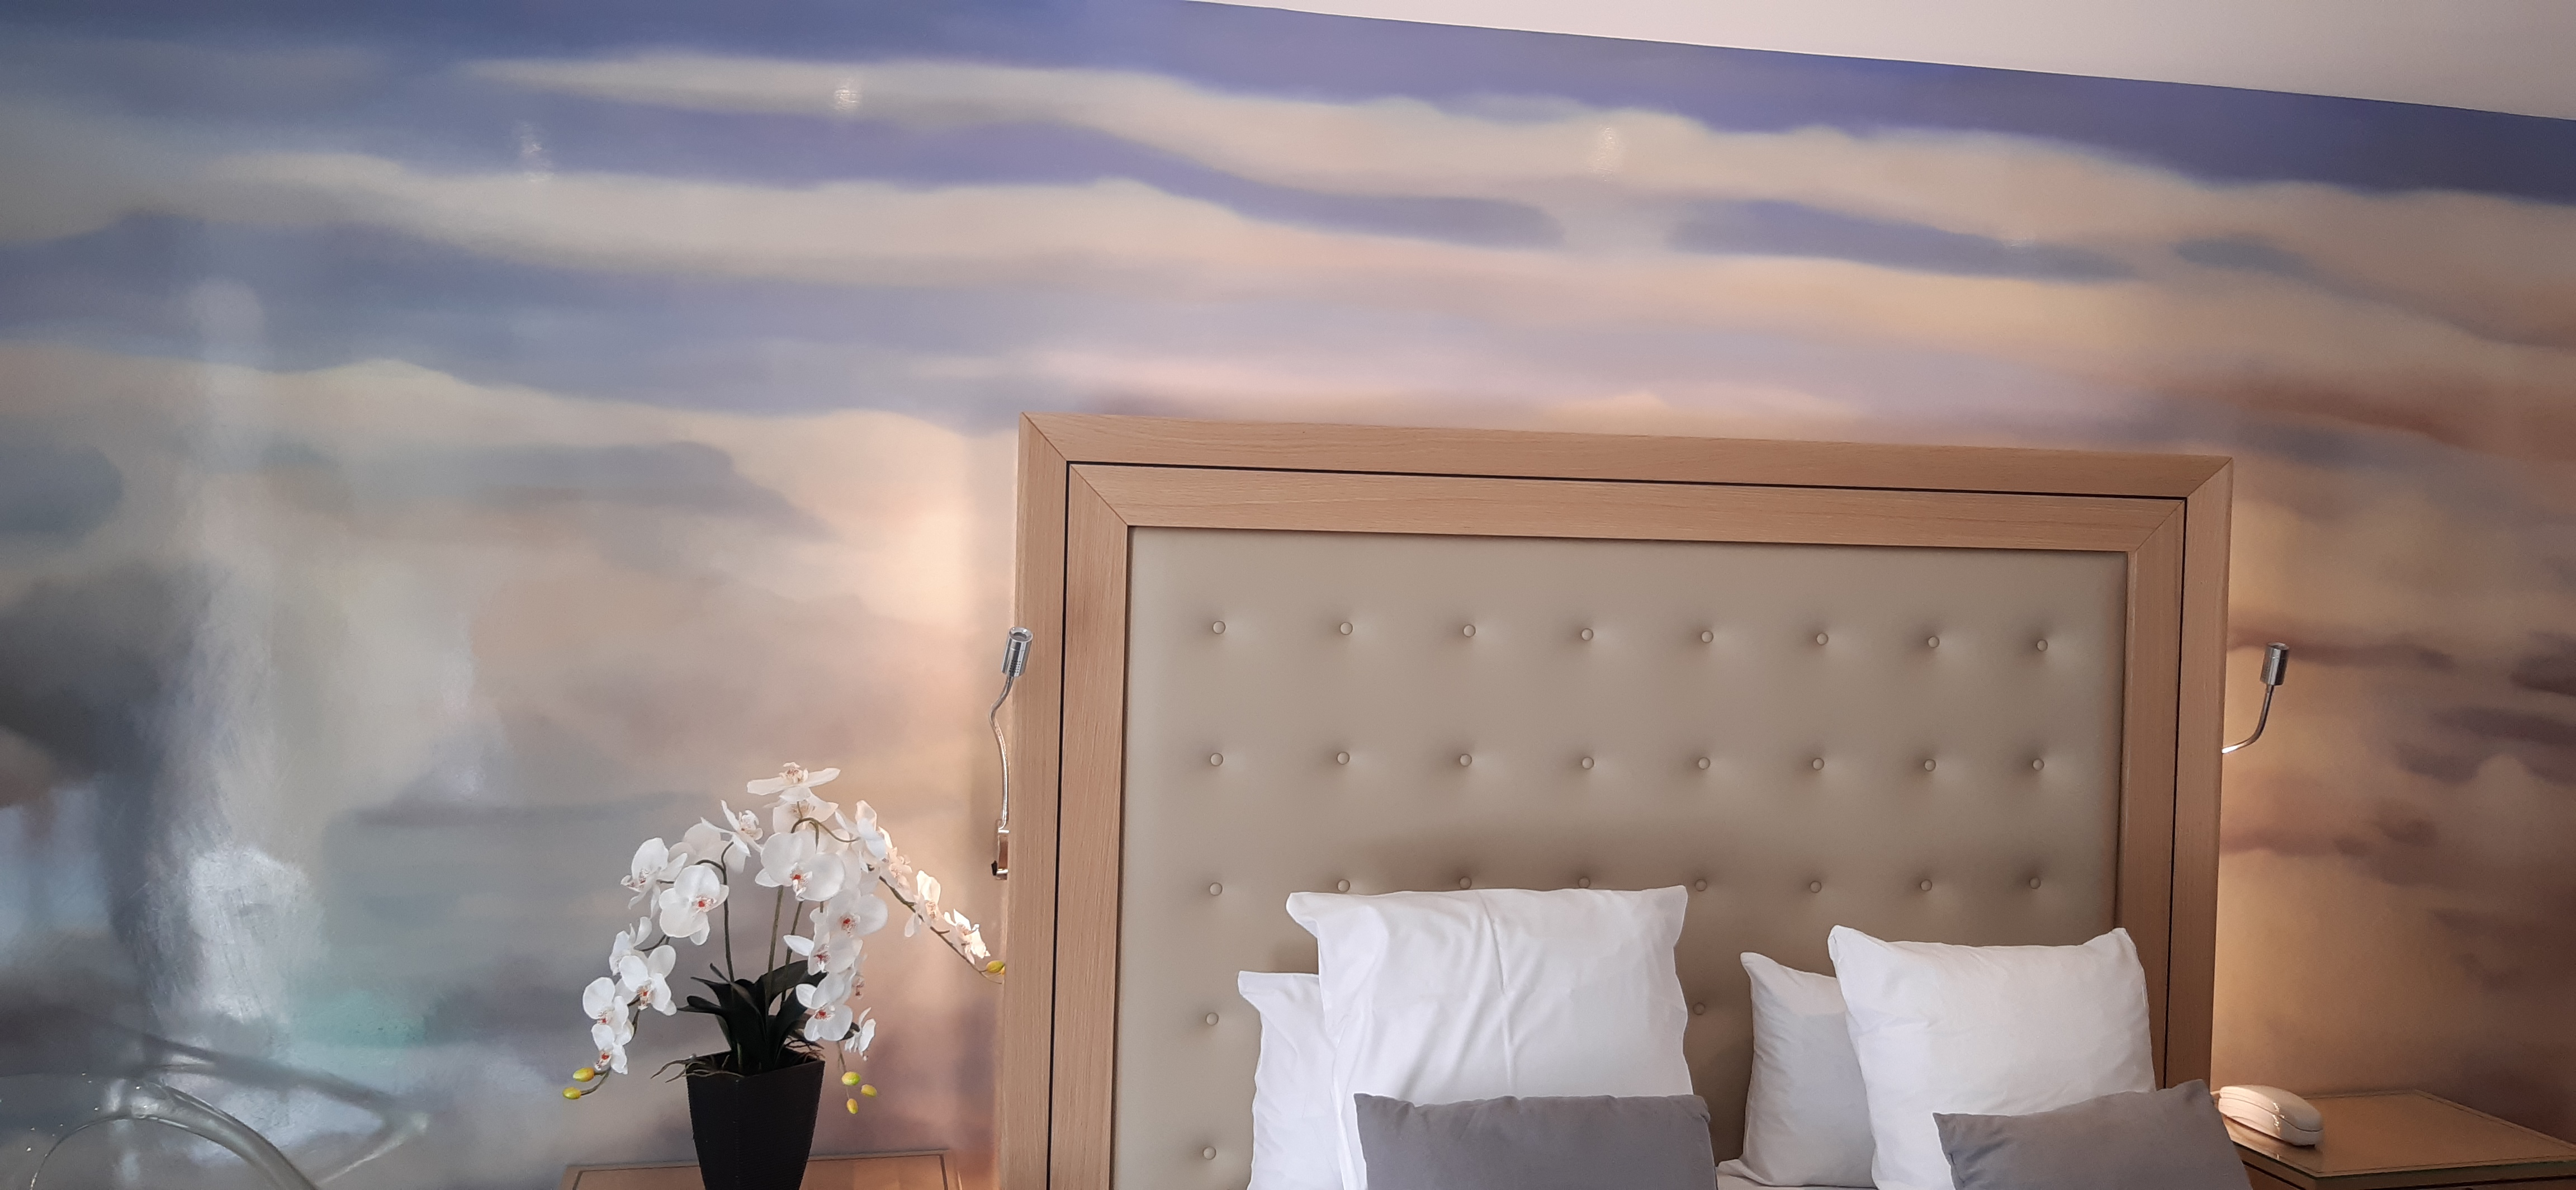 19/Chambres/Traditionnelle/fresque_orchide3.jpg